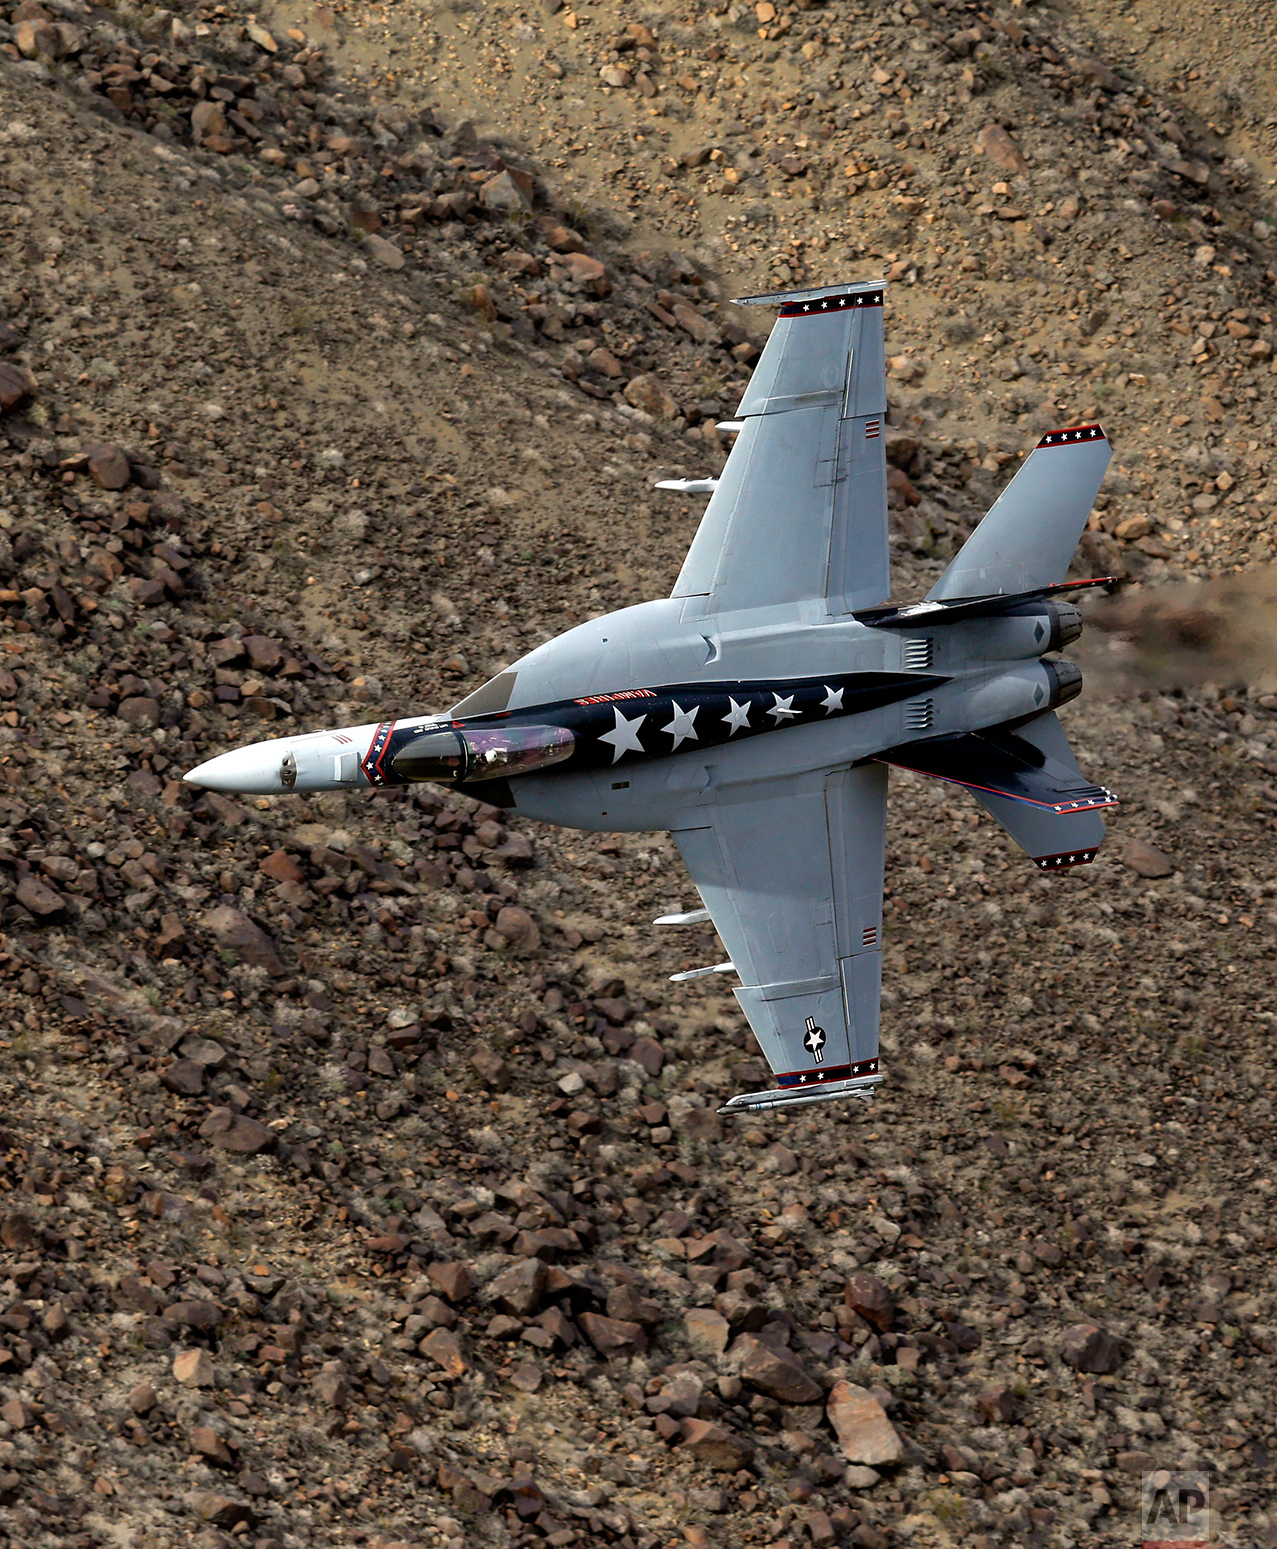 """In this Feb. 27, 2017, photo, Lt. Cmdr. Ian """"Elf"""" Kibler of the VX-9 Vampire squadron from Naval Air Weapons Station, China Lake, banks his F/A-18E Super Hornet through the nicknamed Star Wars Canyon in Death Valley National Park, Calif. (AP Photo/Ben Margot)"""